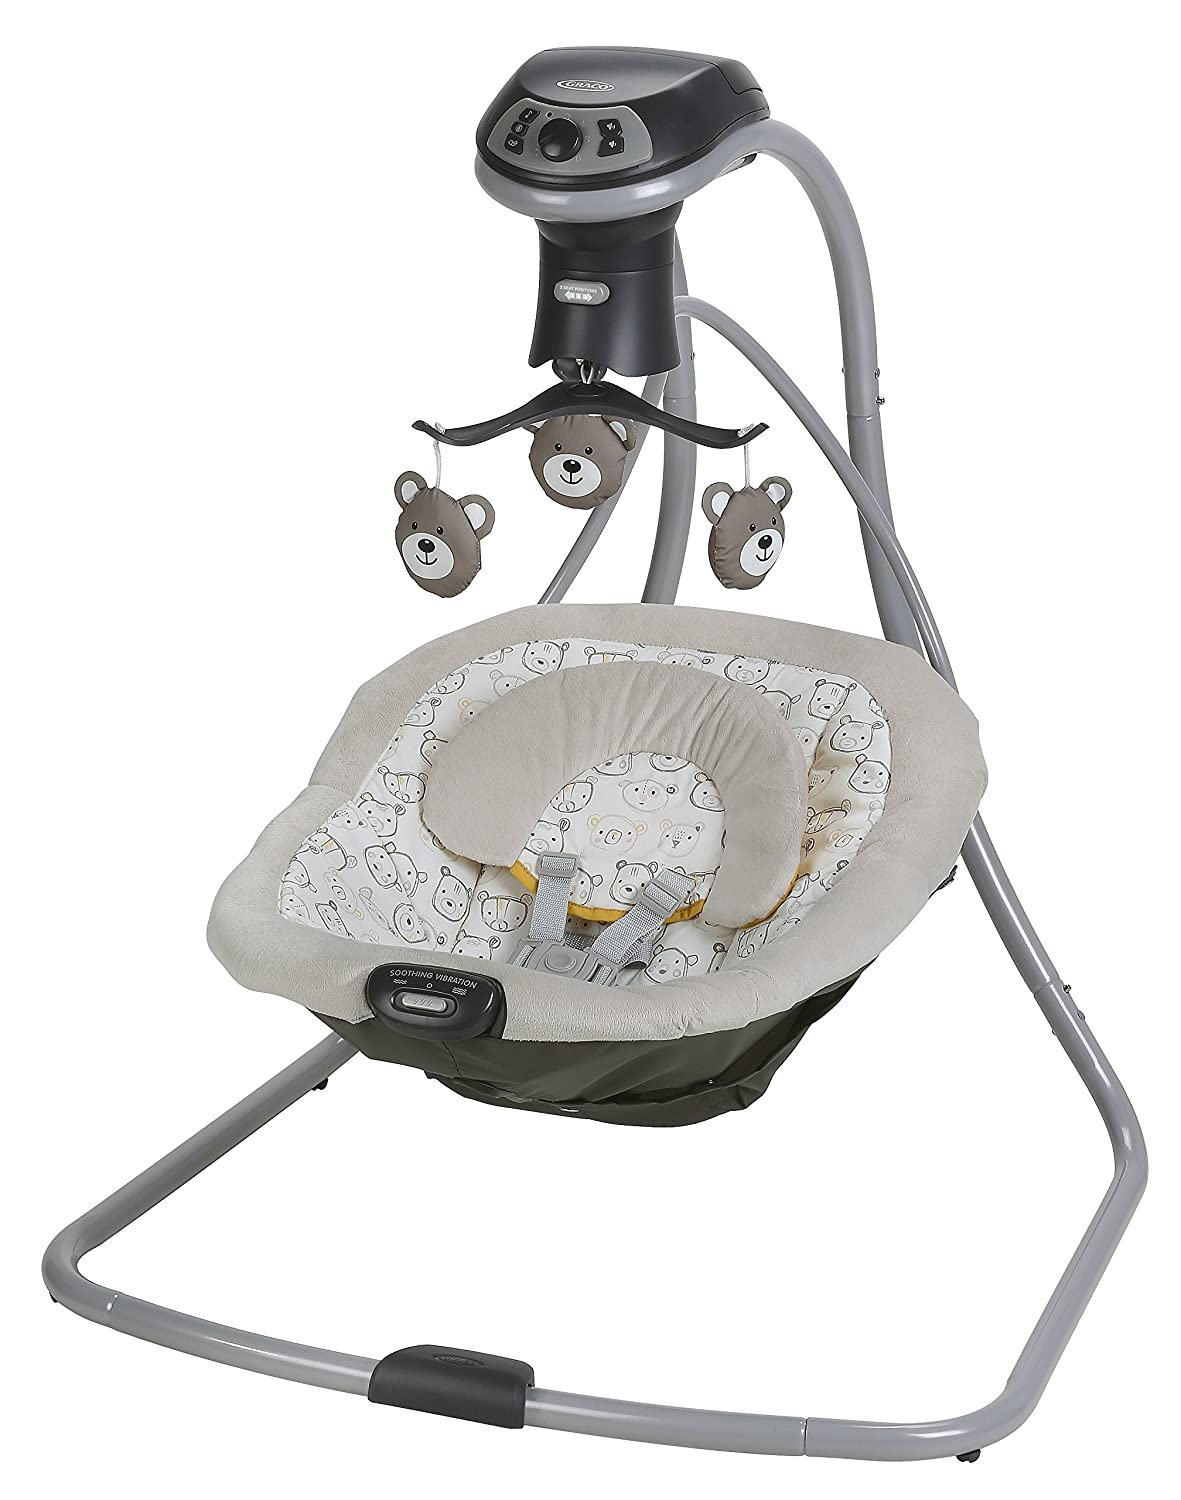 Graco Simple Sway LX Baby Swing, Teddy